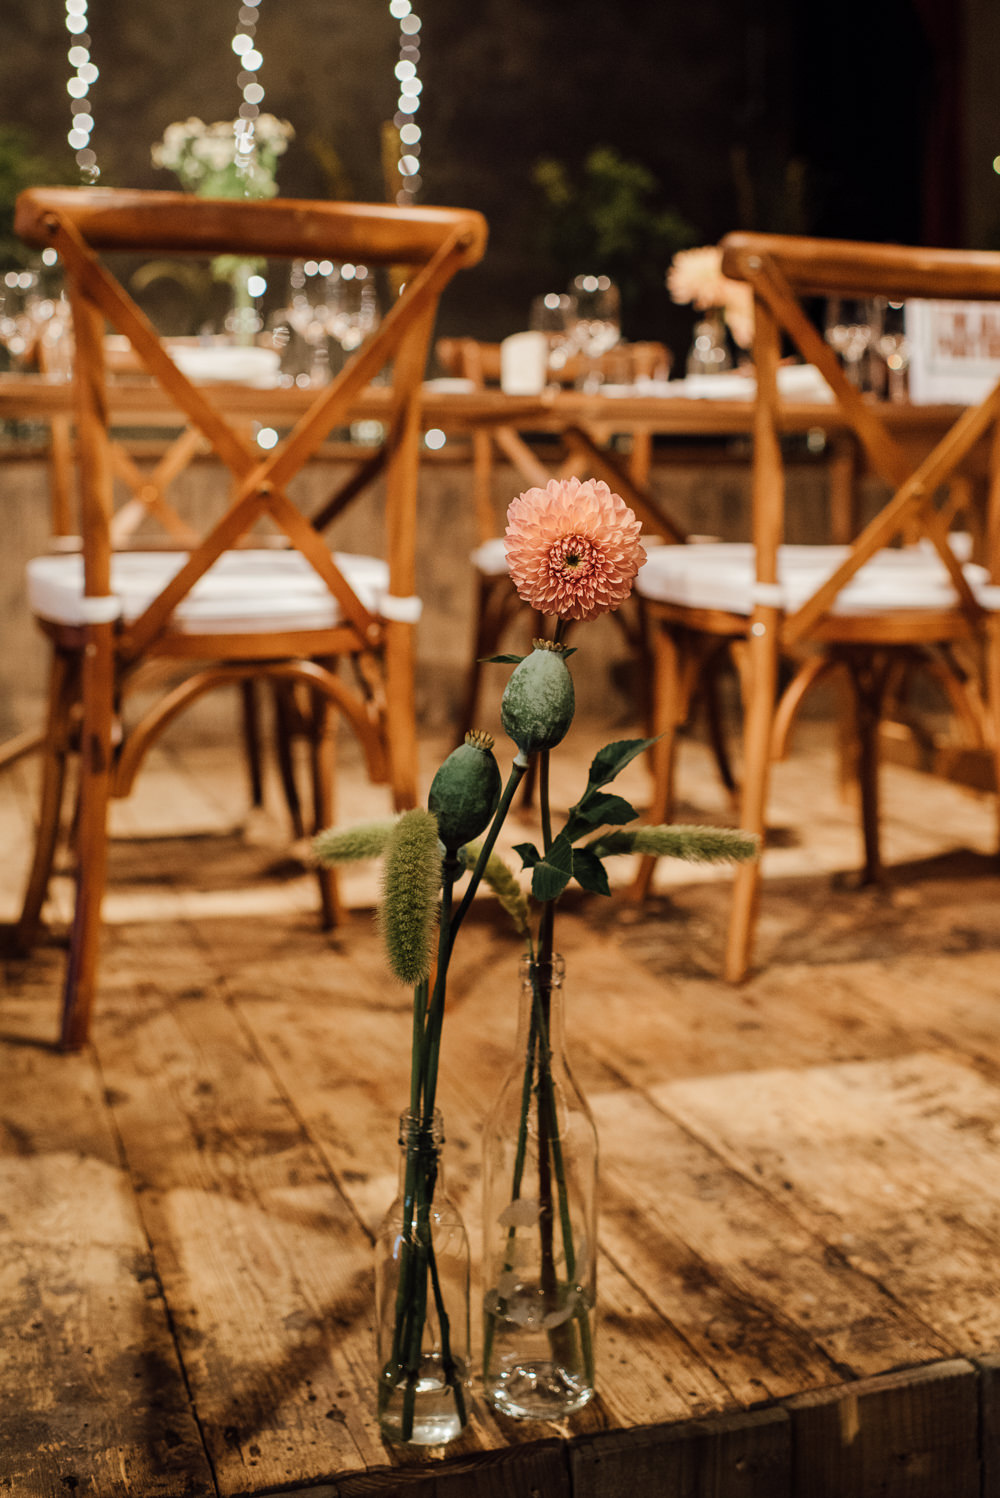 Bottle Flowers Decor Dahlia Seed Head St Paul's Cathedral Wedding The Shannons Photography